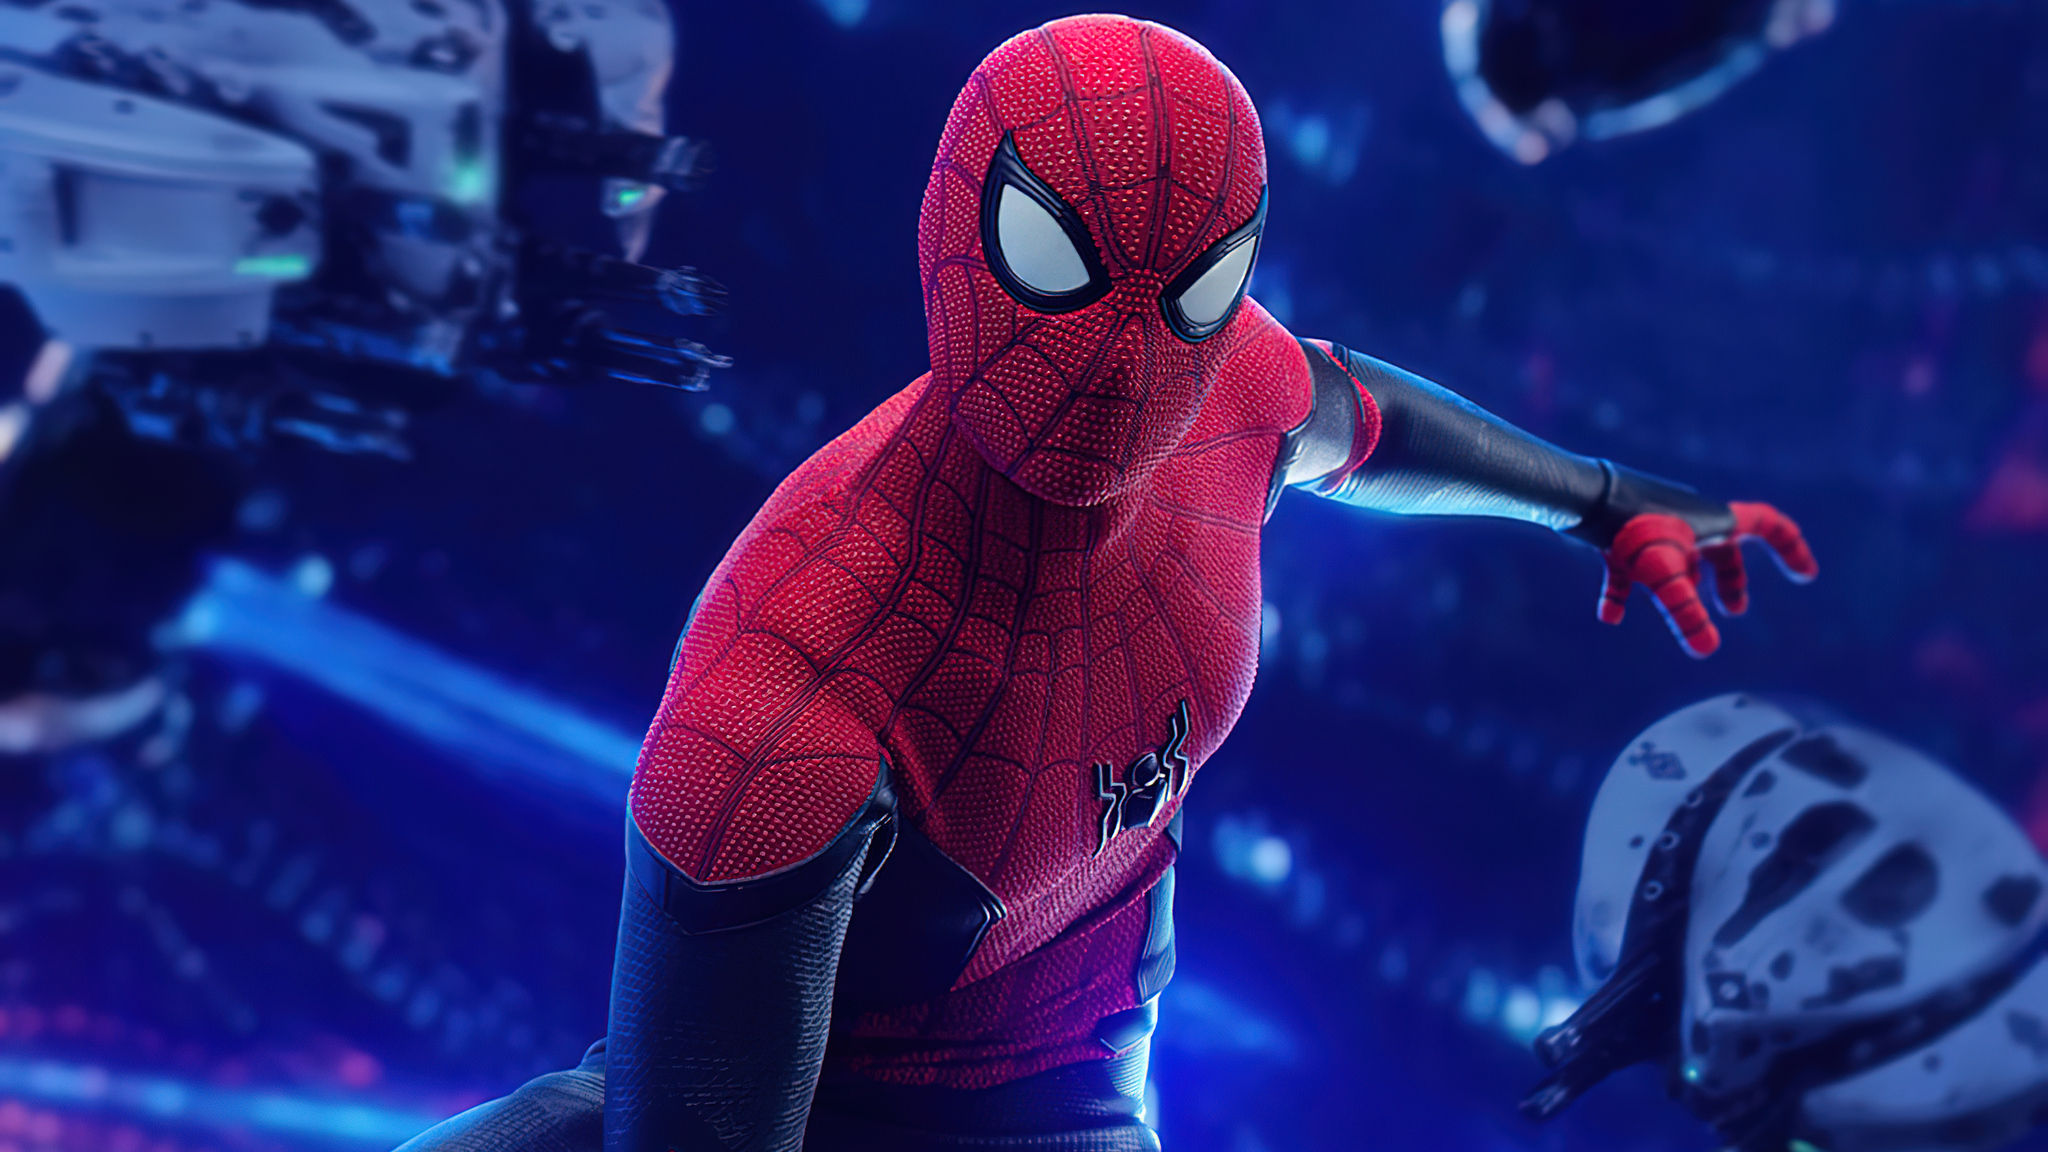 miles-morales-suit-spiderman-ps5-4k-d3.jpg